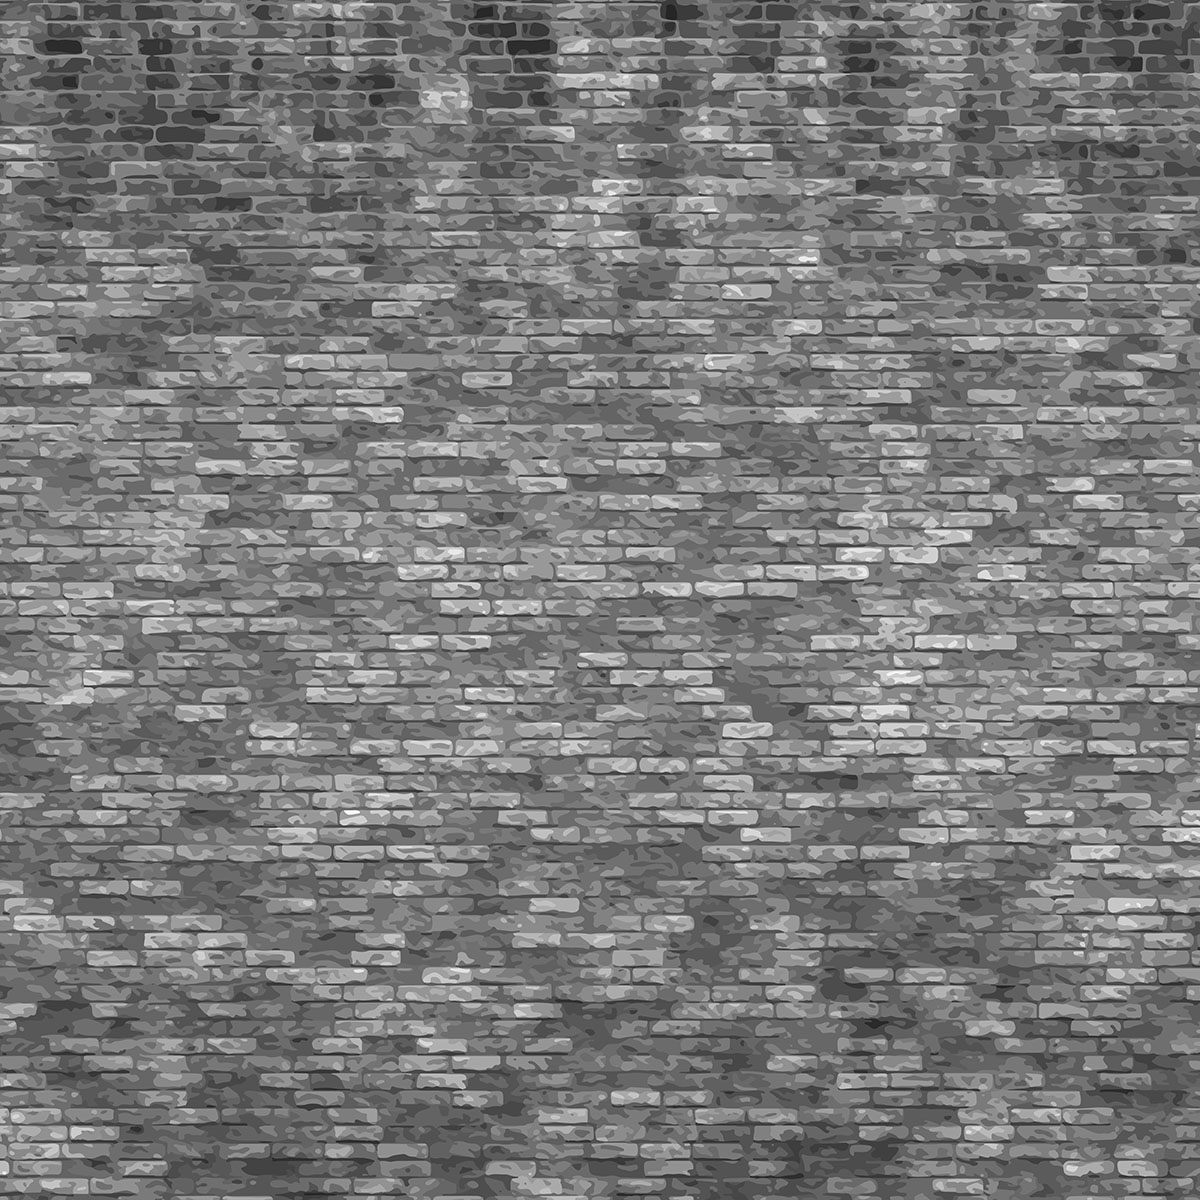 Grunge Brick Wall Download Free Vector Art Stock